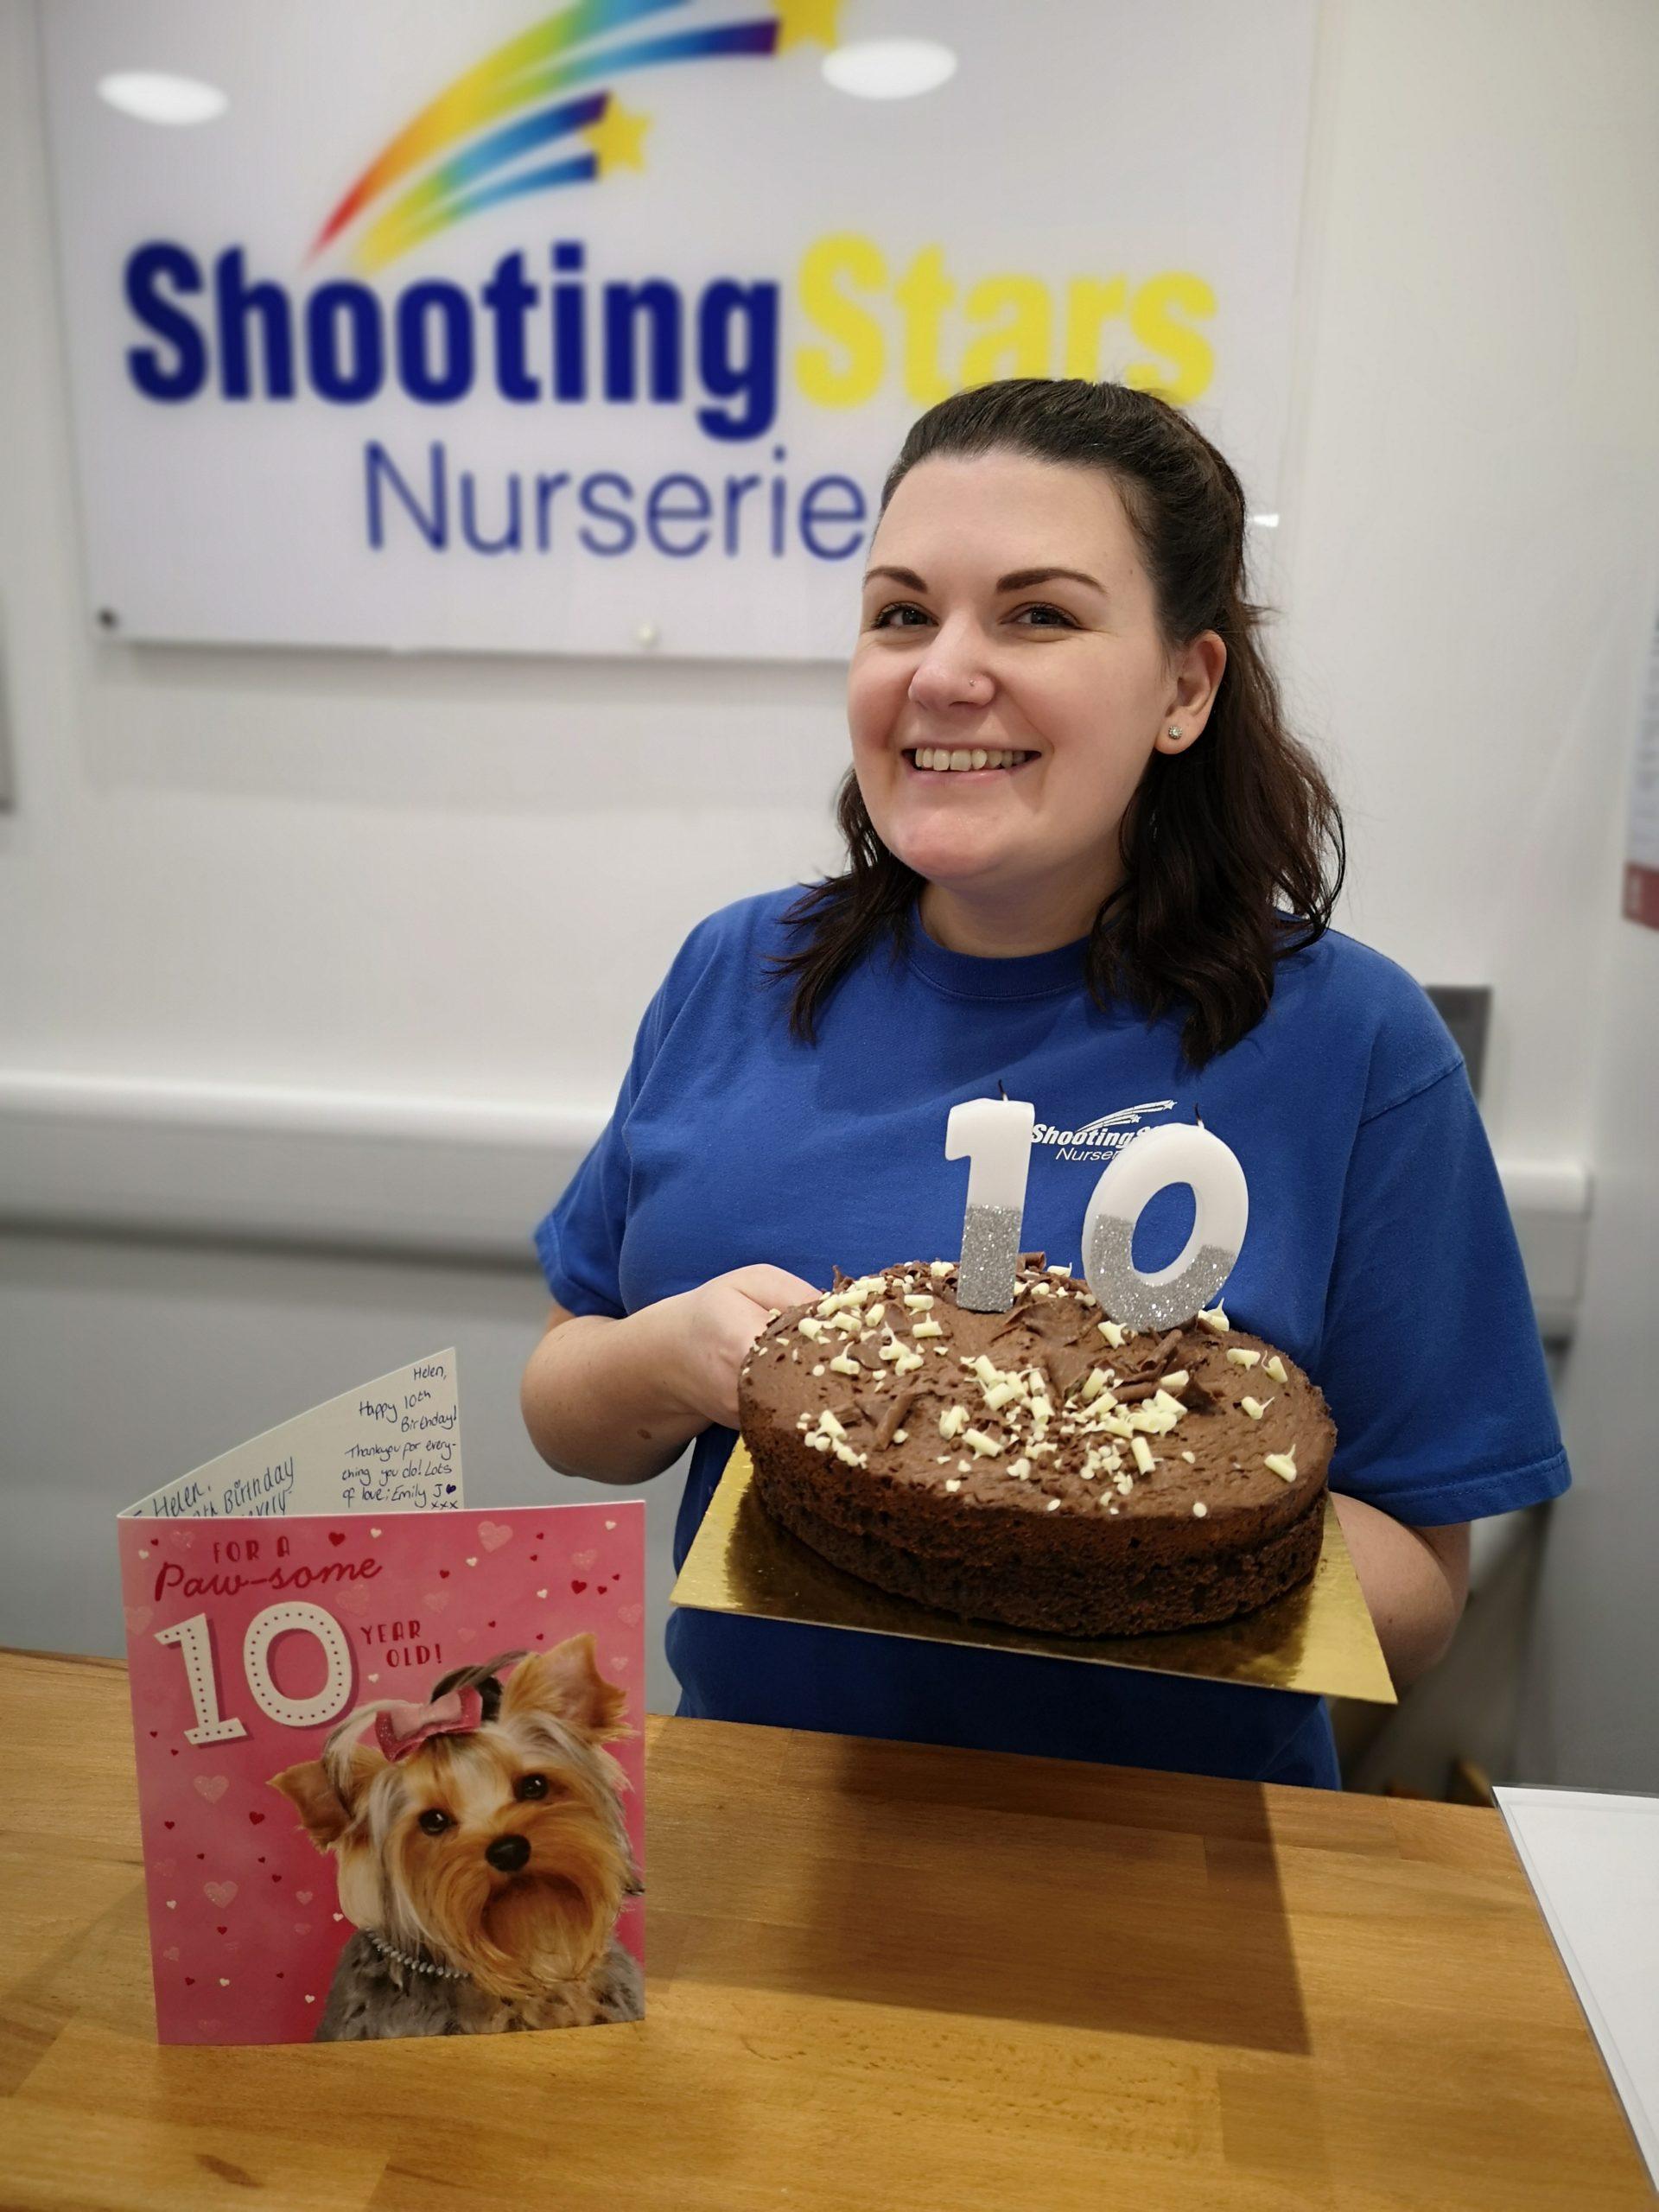 A huge congratulations to Helen from Bromsgrove Nursery, she is celebrating 10 years as part of the team at Shooting Stars Nurseries!